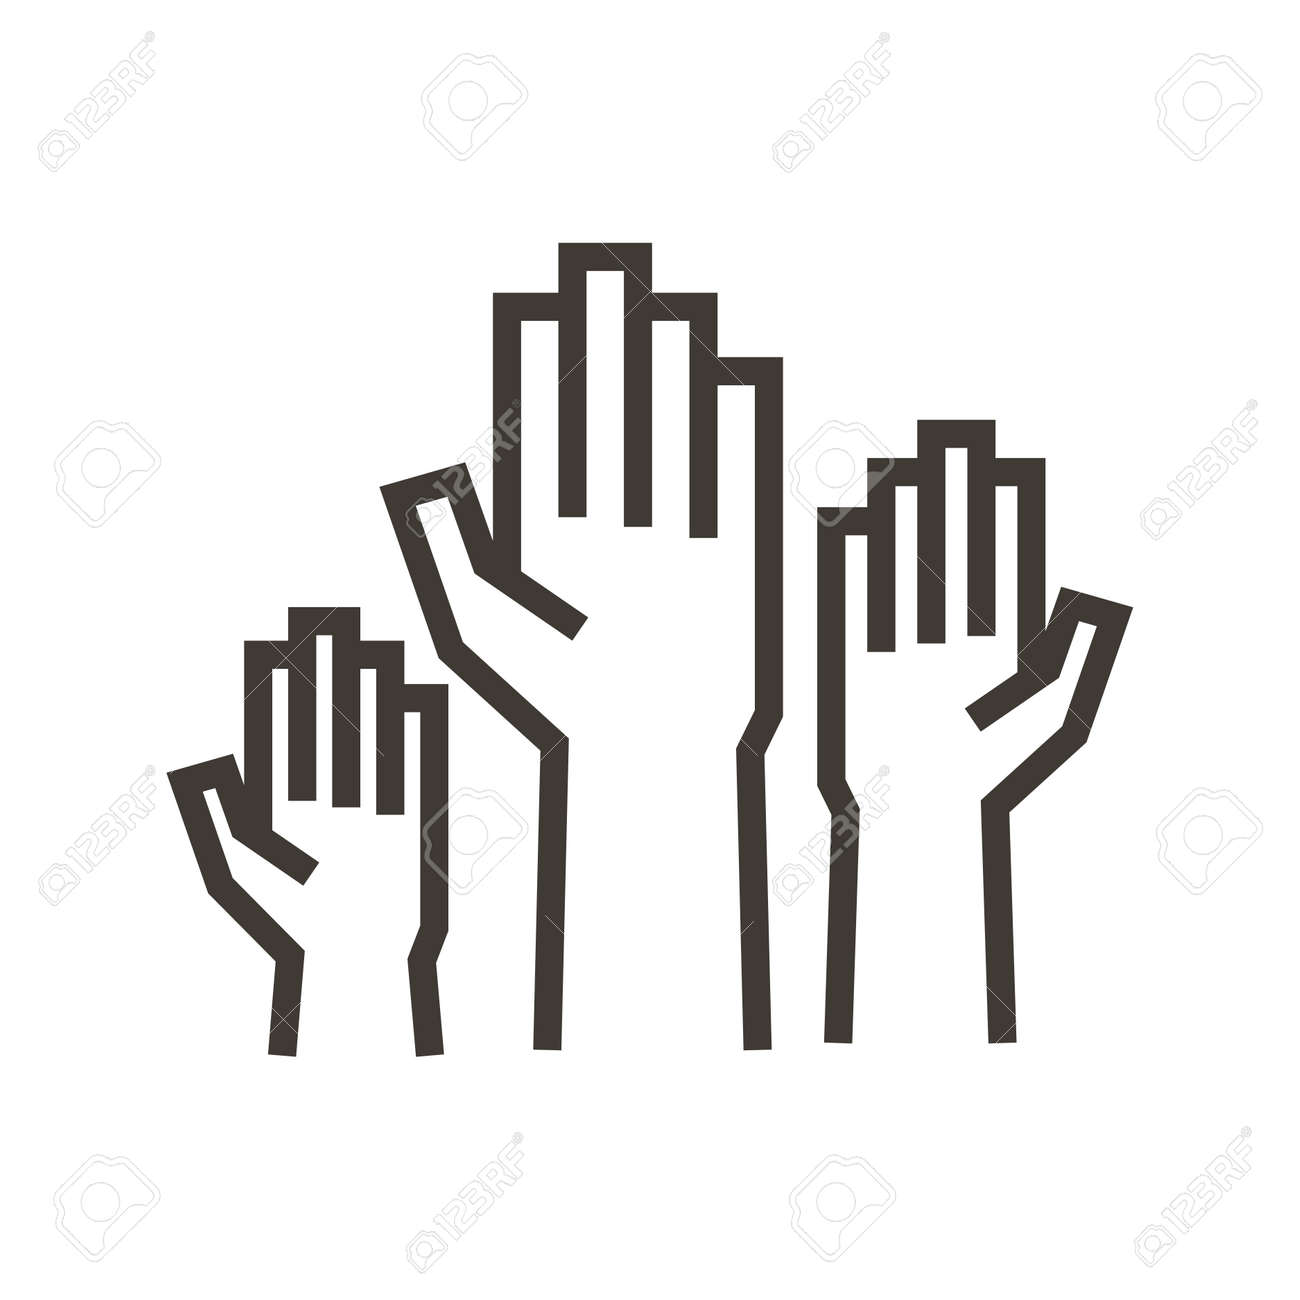 Volunteers and charity work. Raised helping hands. Vector thin line icon illustrations with a crowd of people ready and available to help and contribute. - 158456428